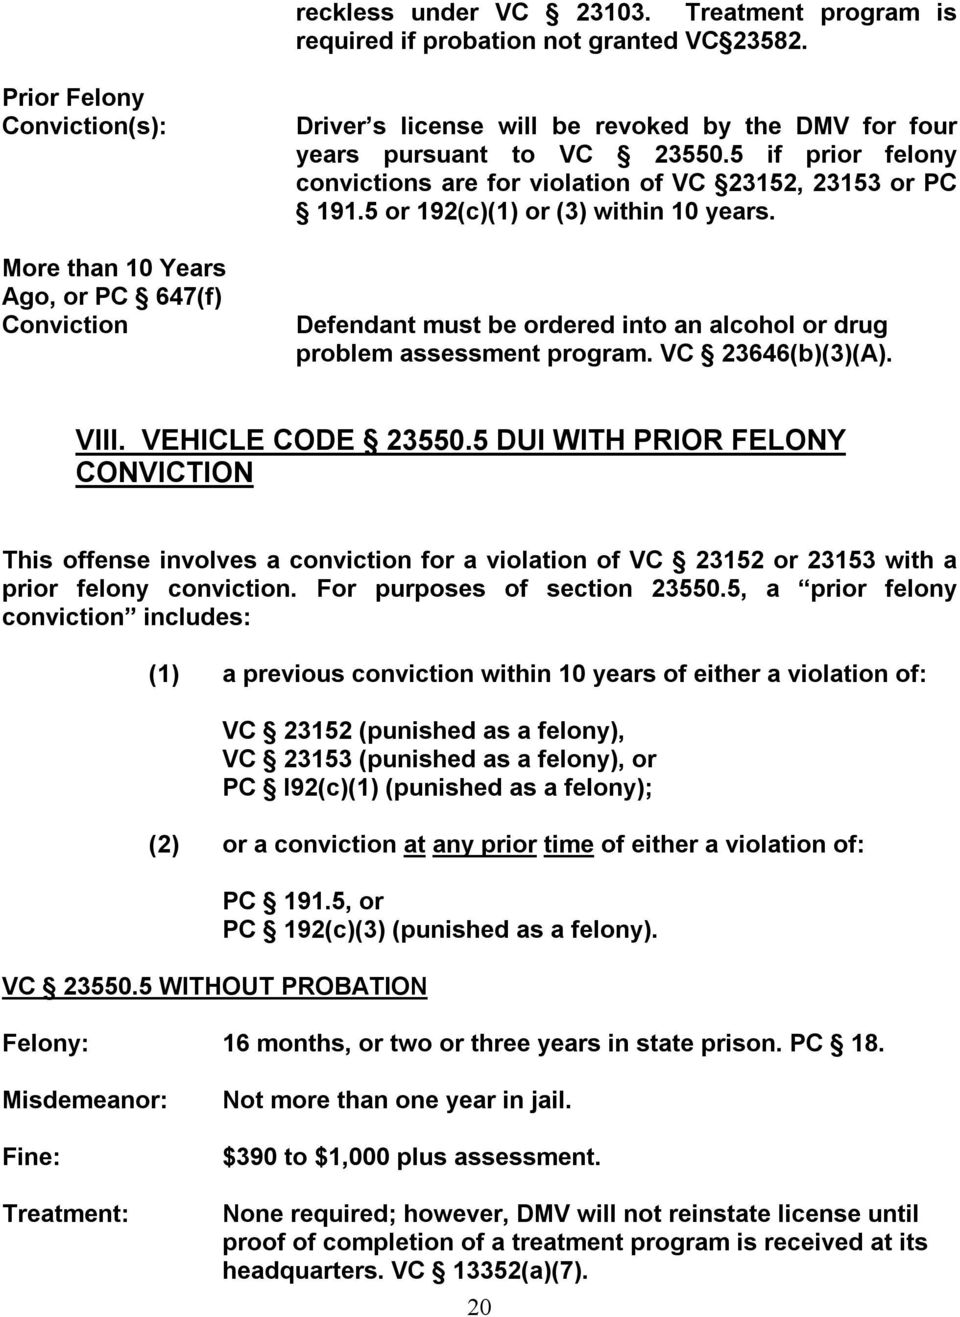 5 if prior felony convictions are for violation of VC 23152, 23153 or PC 191.5 or 192(c)(1) or (3) within 10 years. Defendant must be ordered into an alcohol or drug problem assessment program.